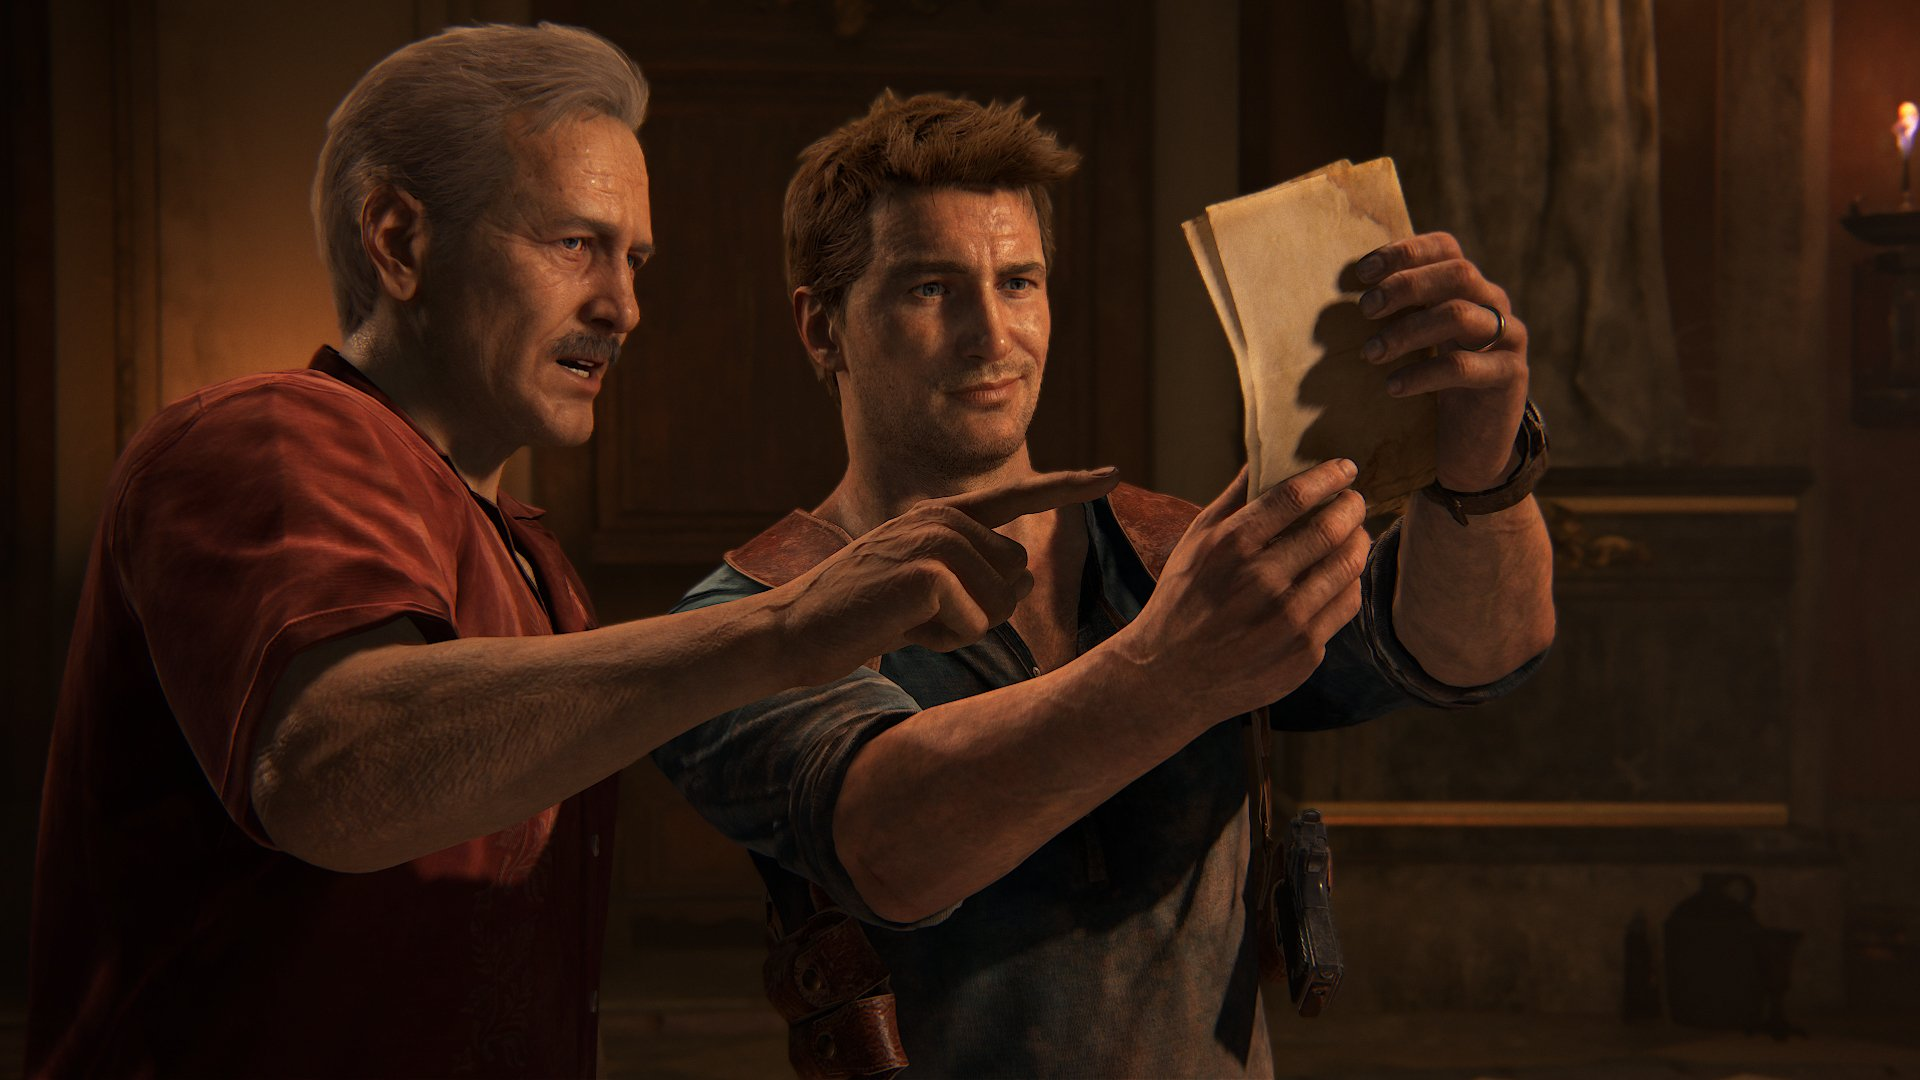 Uncharted 4 Will Expose Something About Nathan Drake That We've Never Seen Before 2